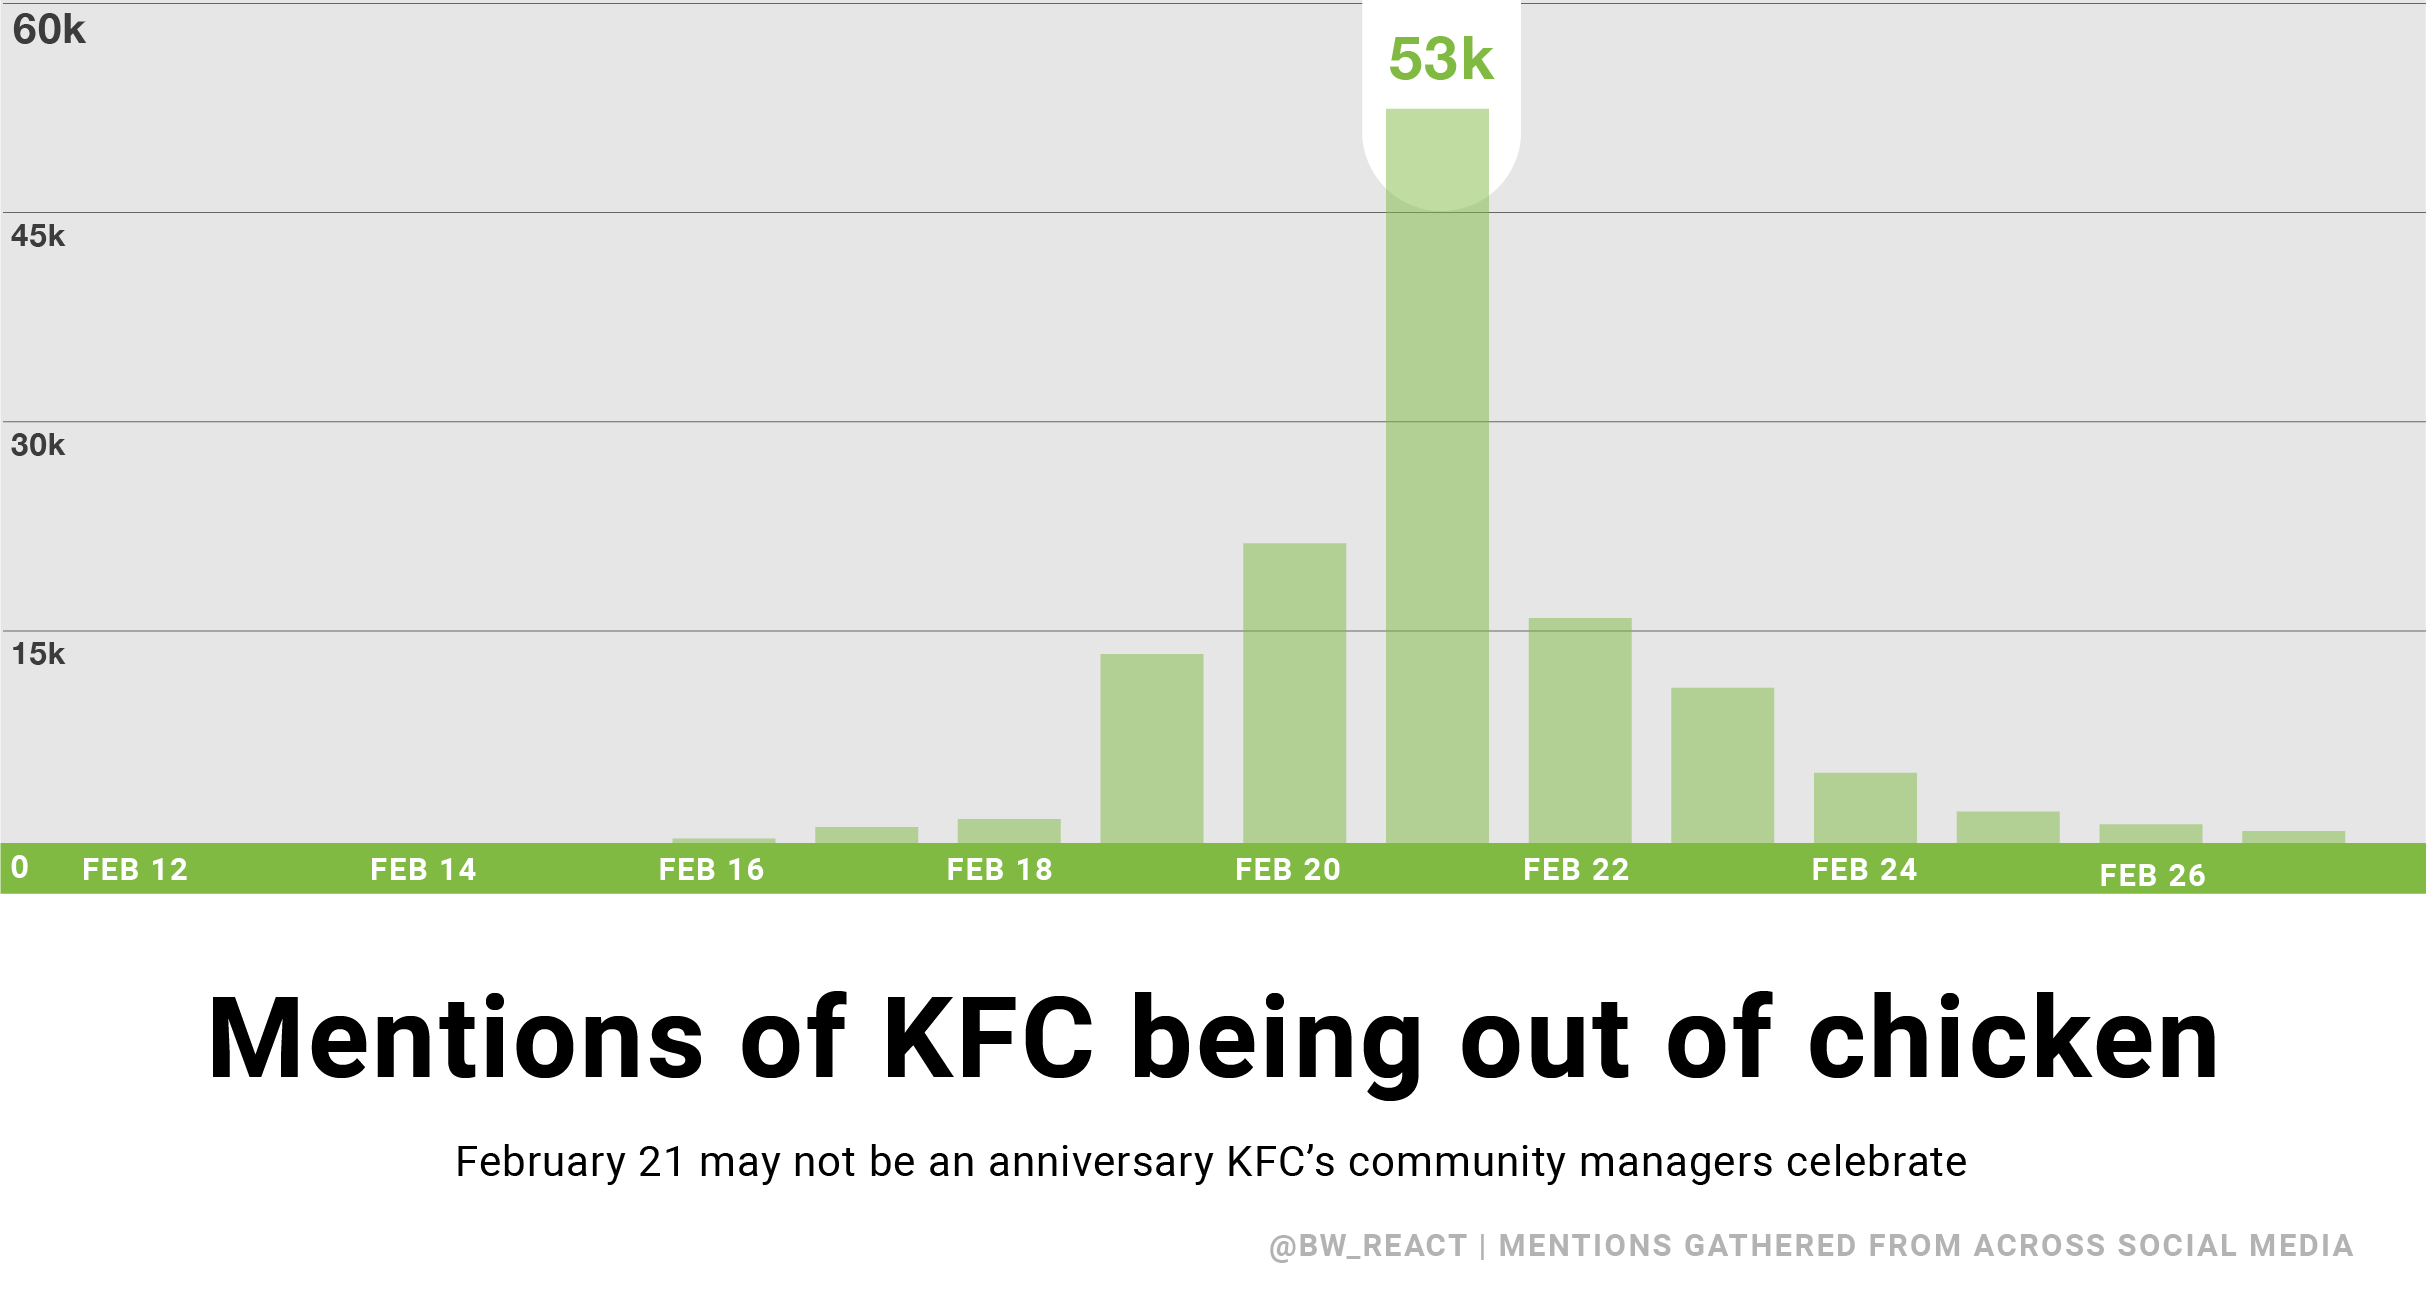 A bar chart shows day-by-day mentions of when KFC ran out of chicken. They peak on the 21st of February.